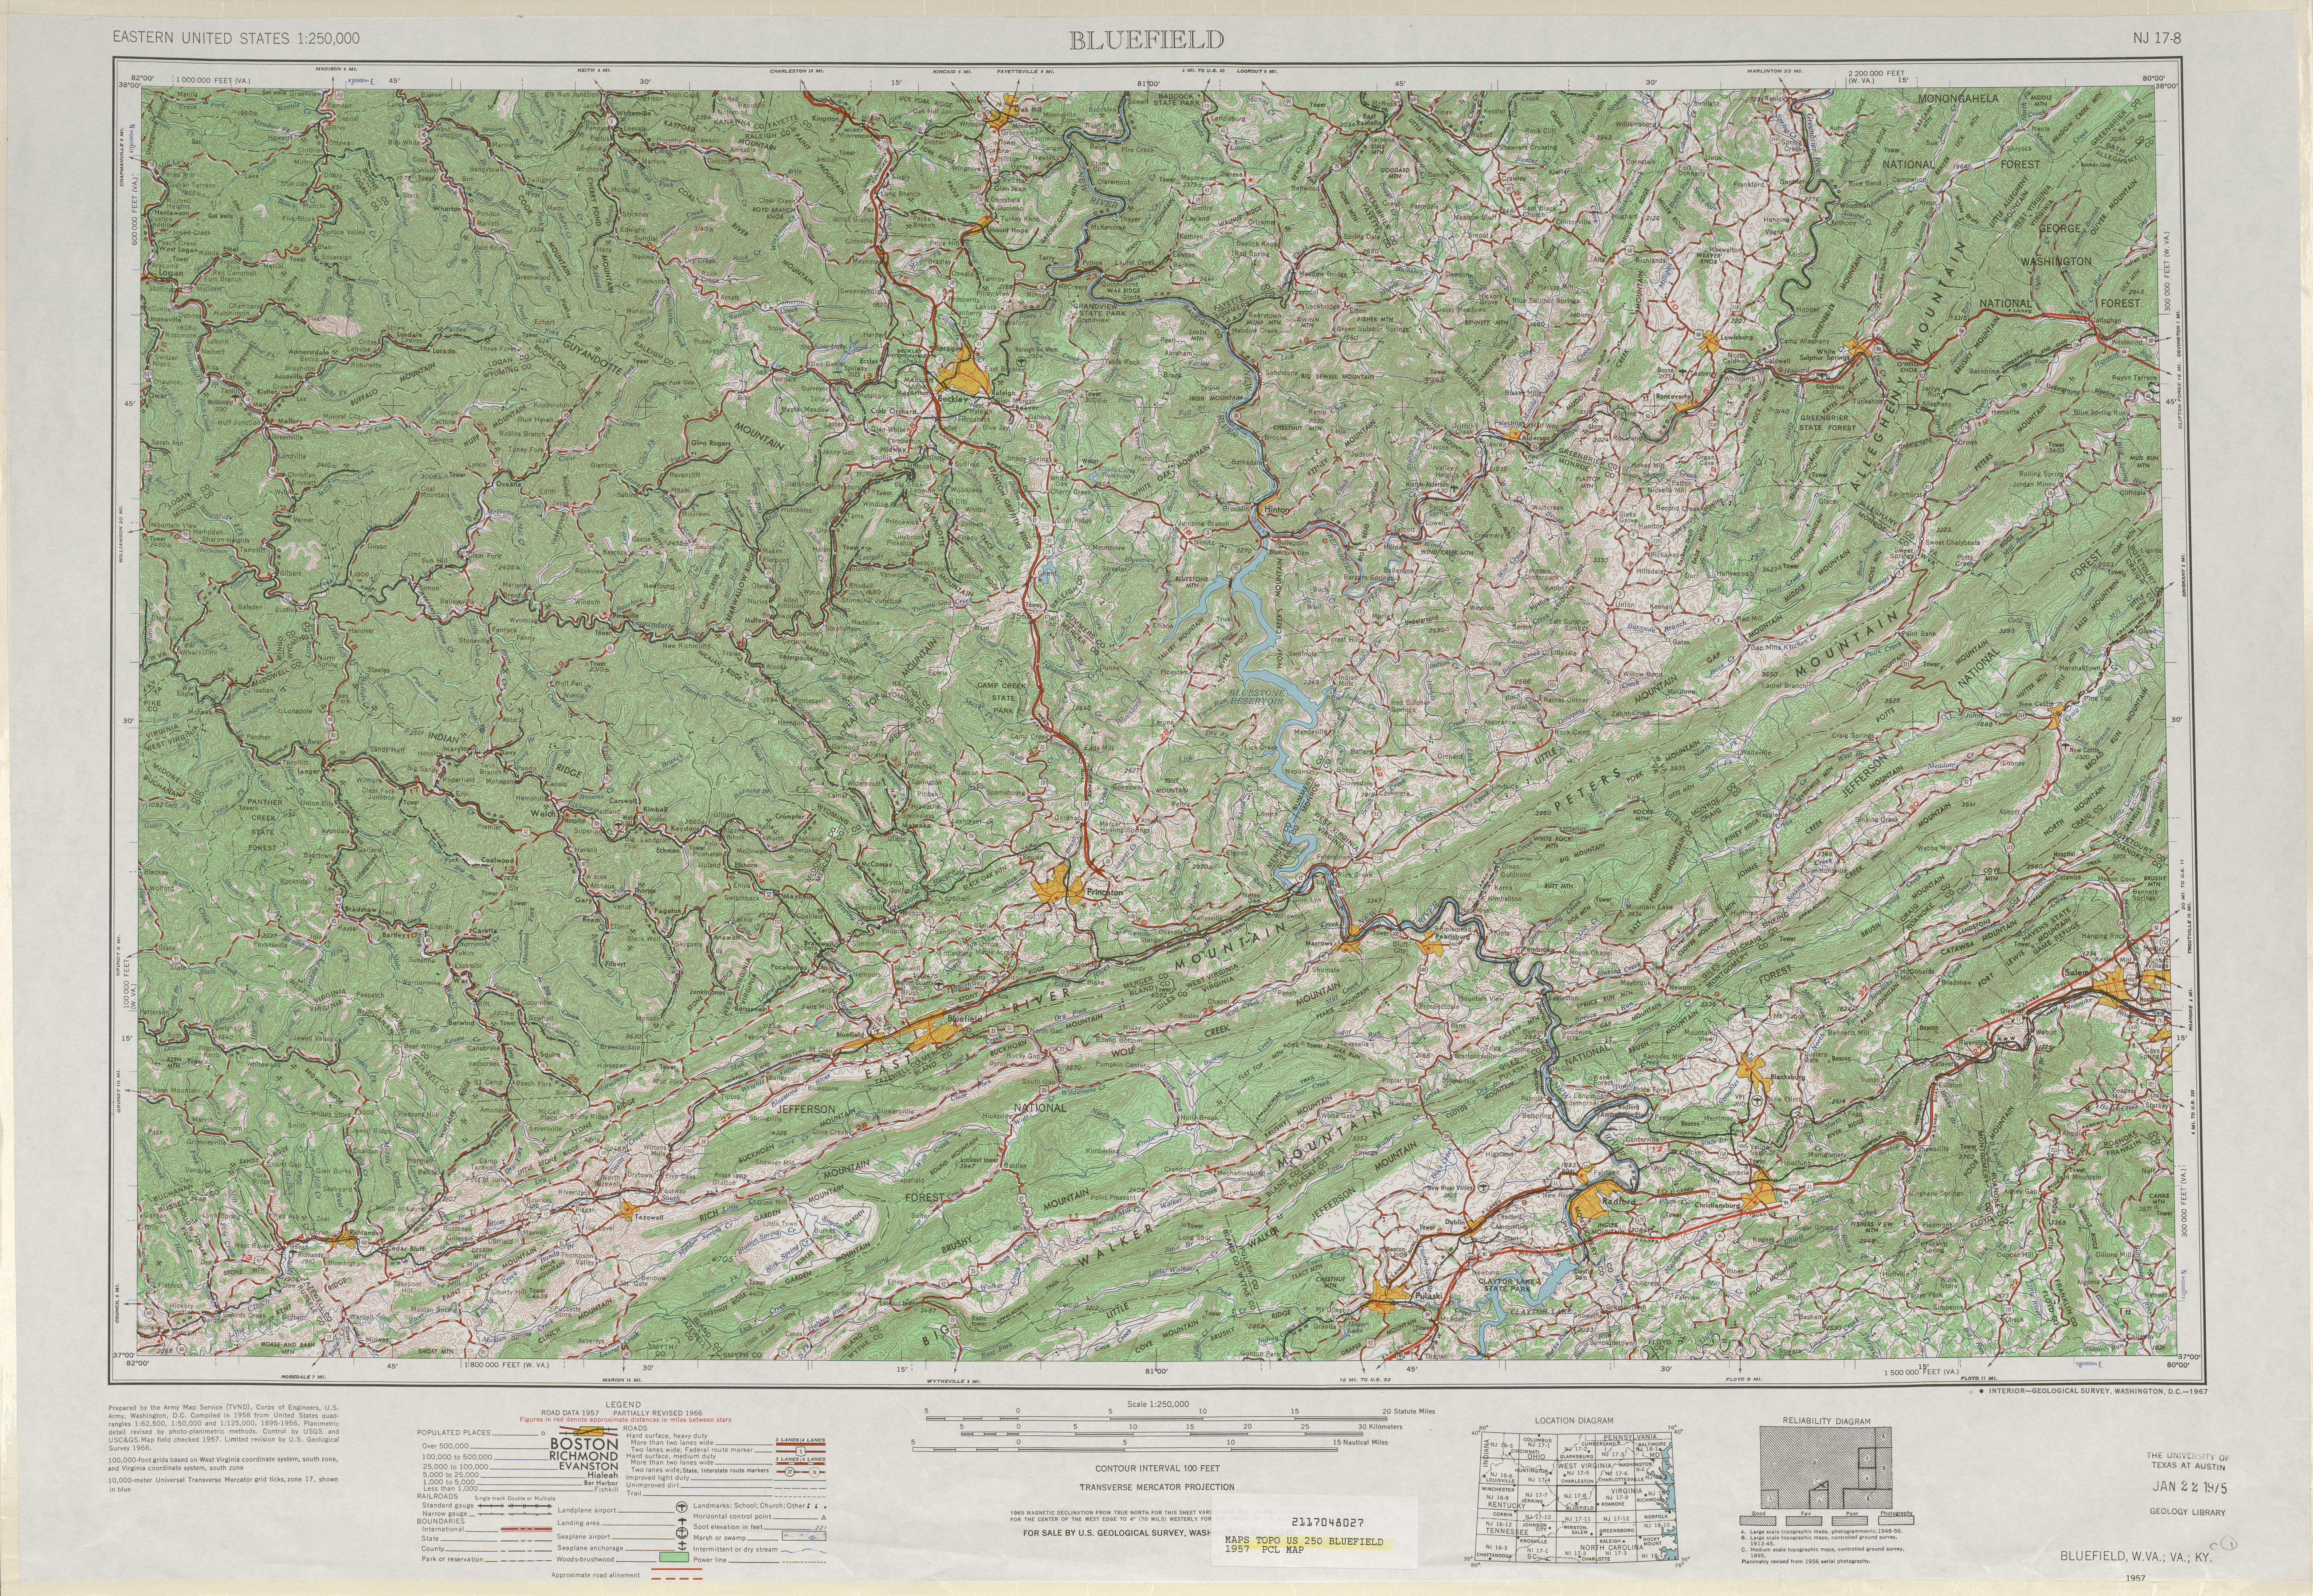 Bluefield Topographic Map Sheet, United States 1957